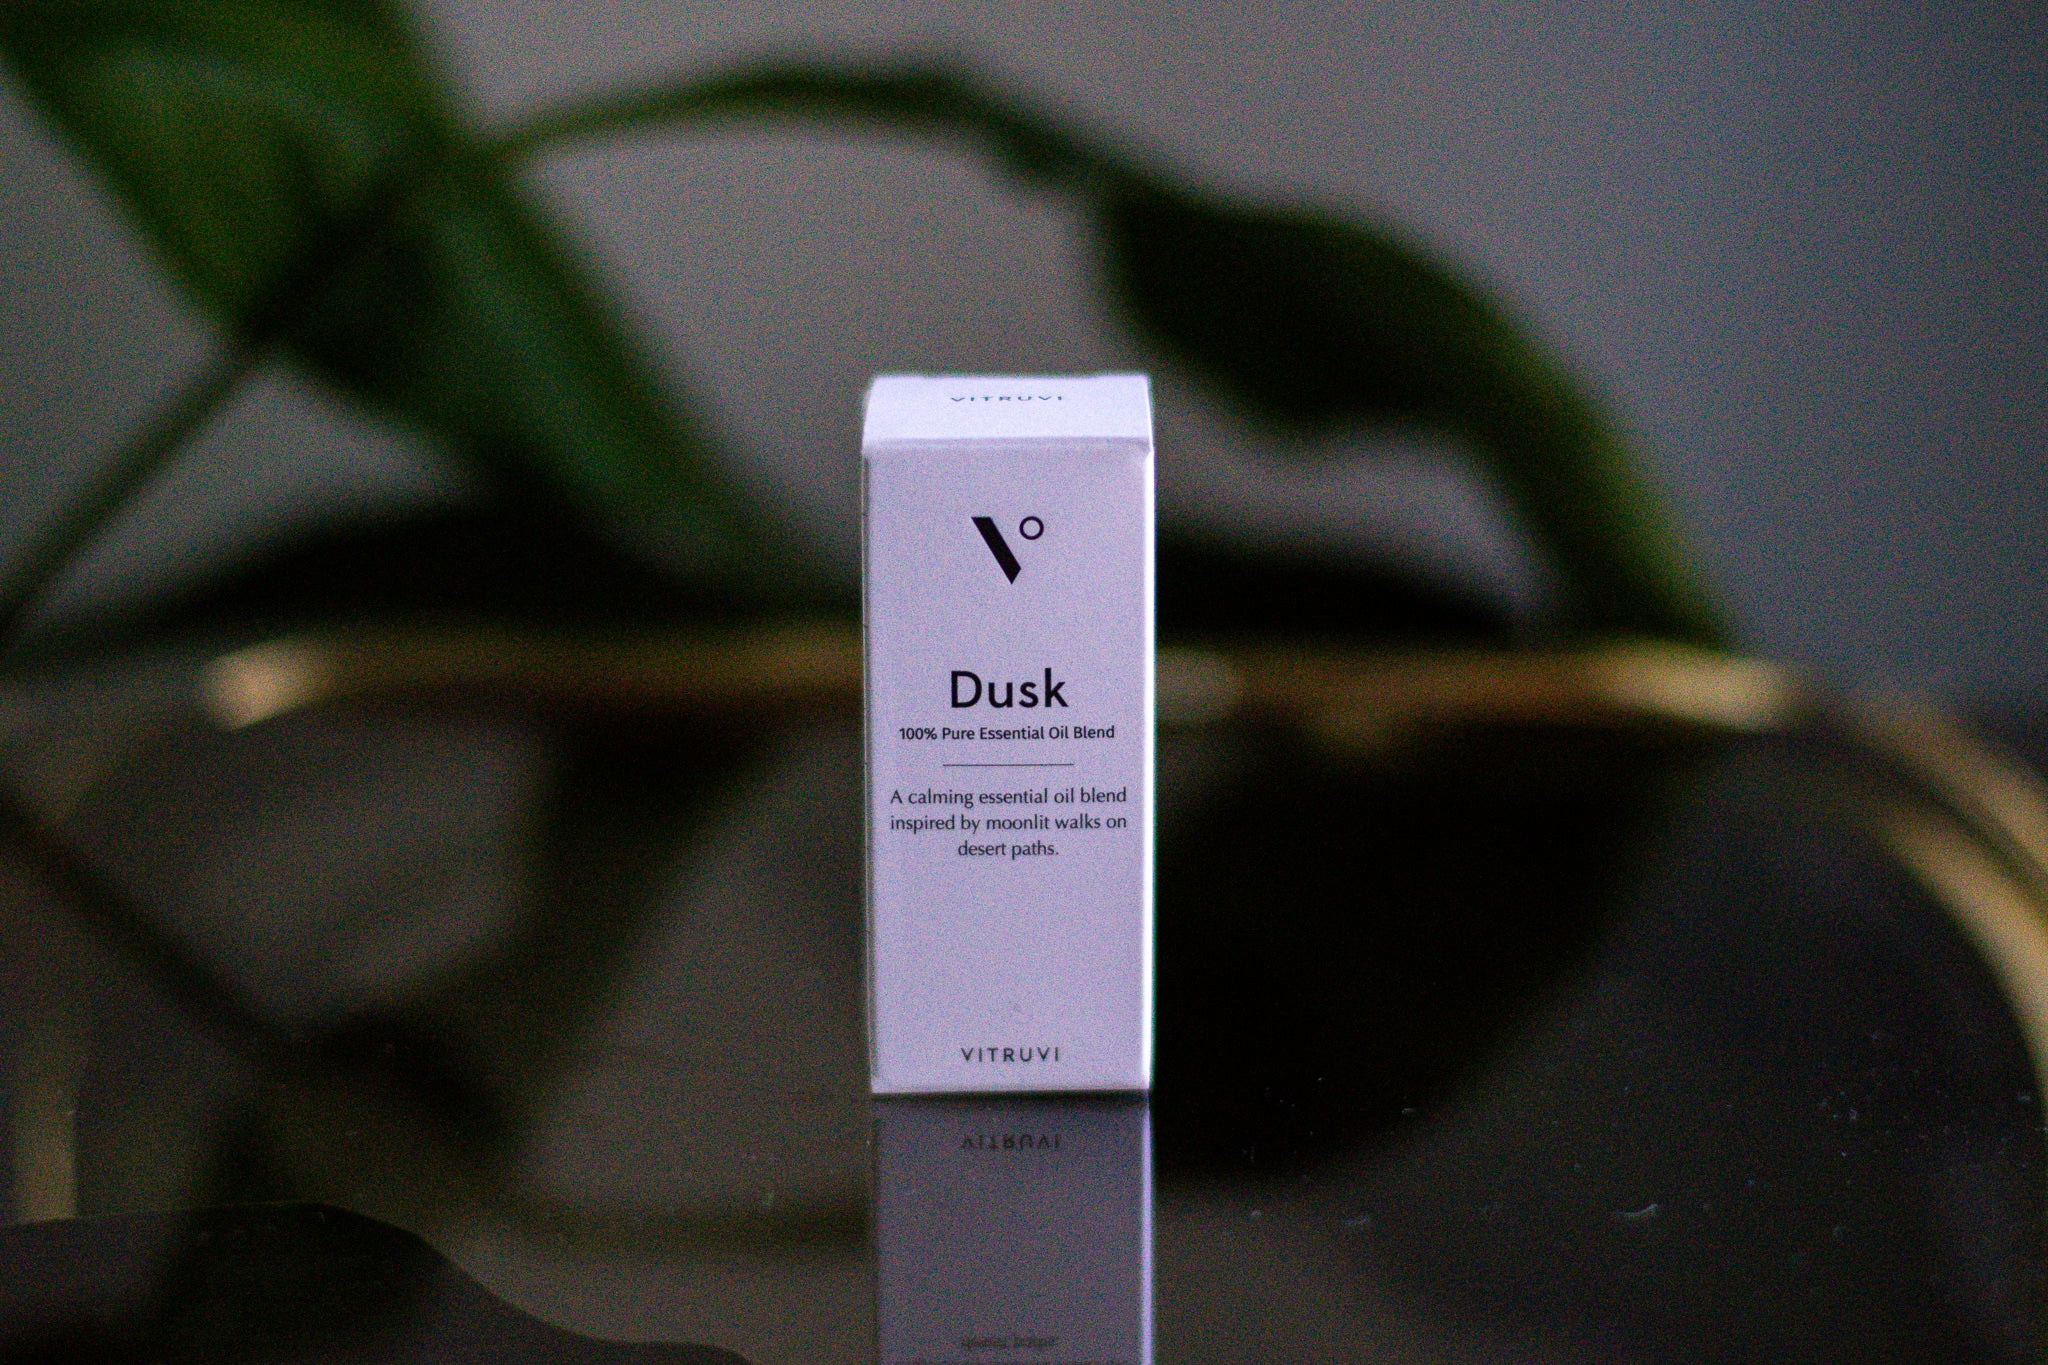 Dusk Essential Oil Blend